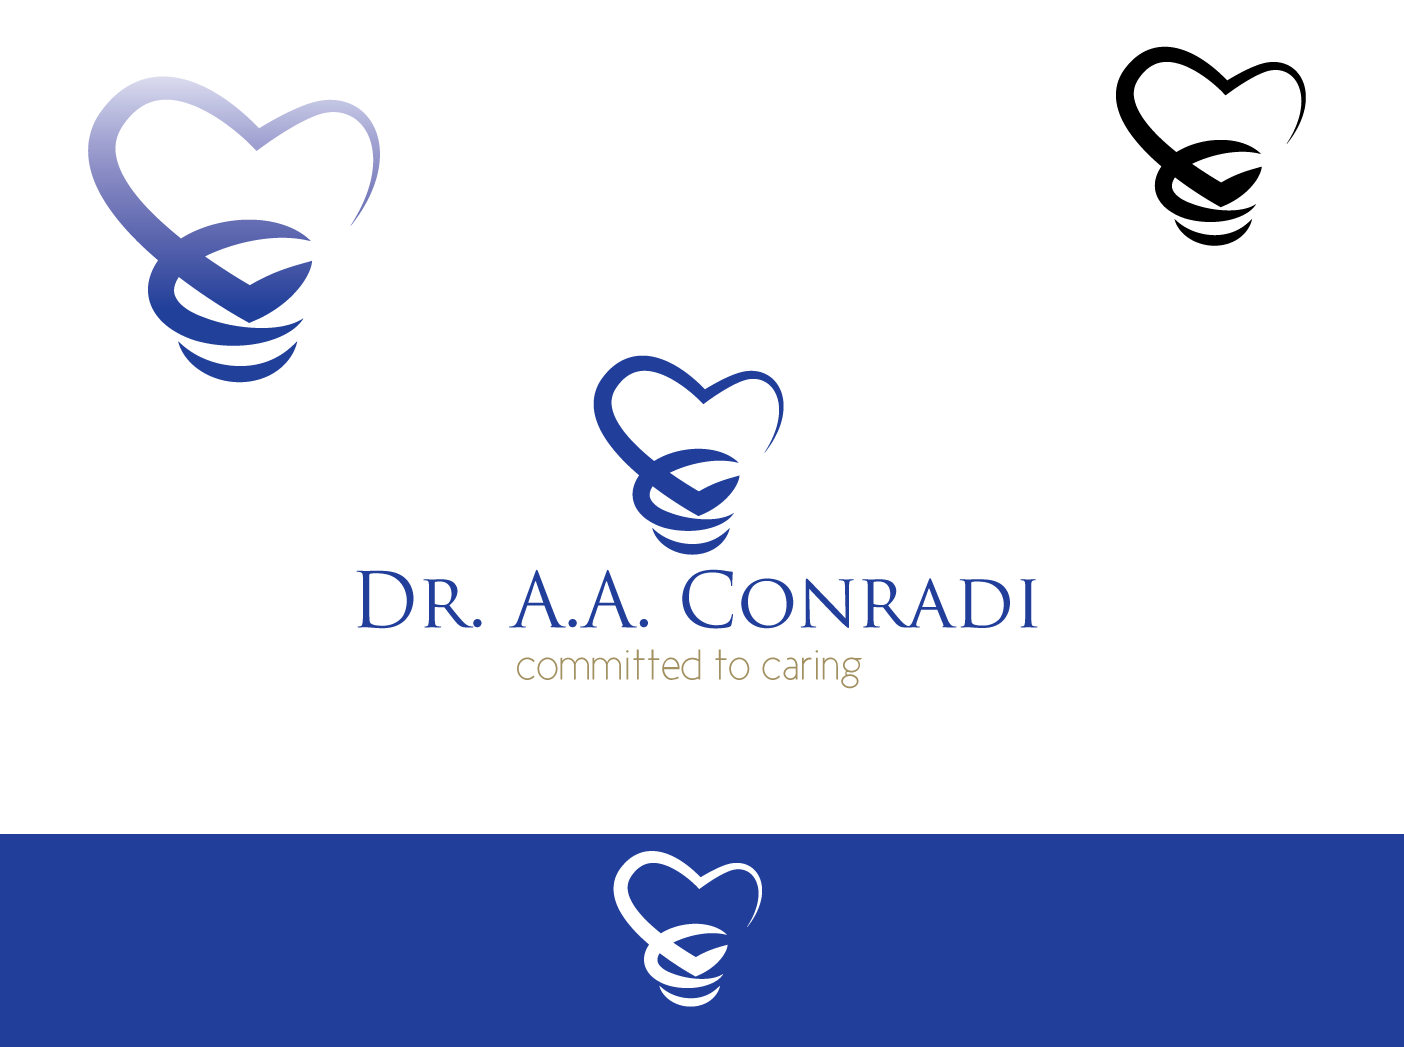 Logo Design by Severiano Fernandes - Entry No. 29 in the Logo Design Contest Unique Logo Design Wanted for Dr. A.A. Conradi.